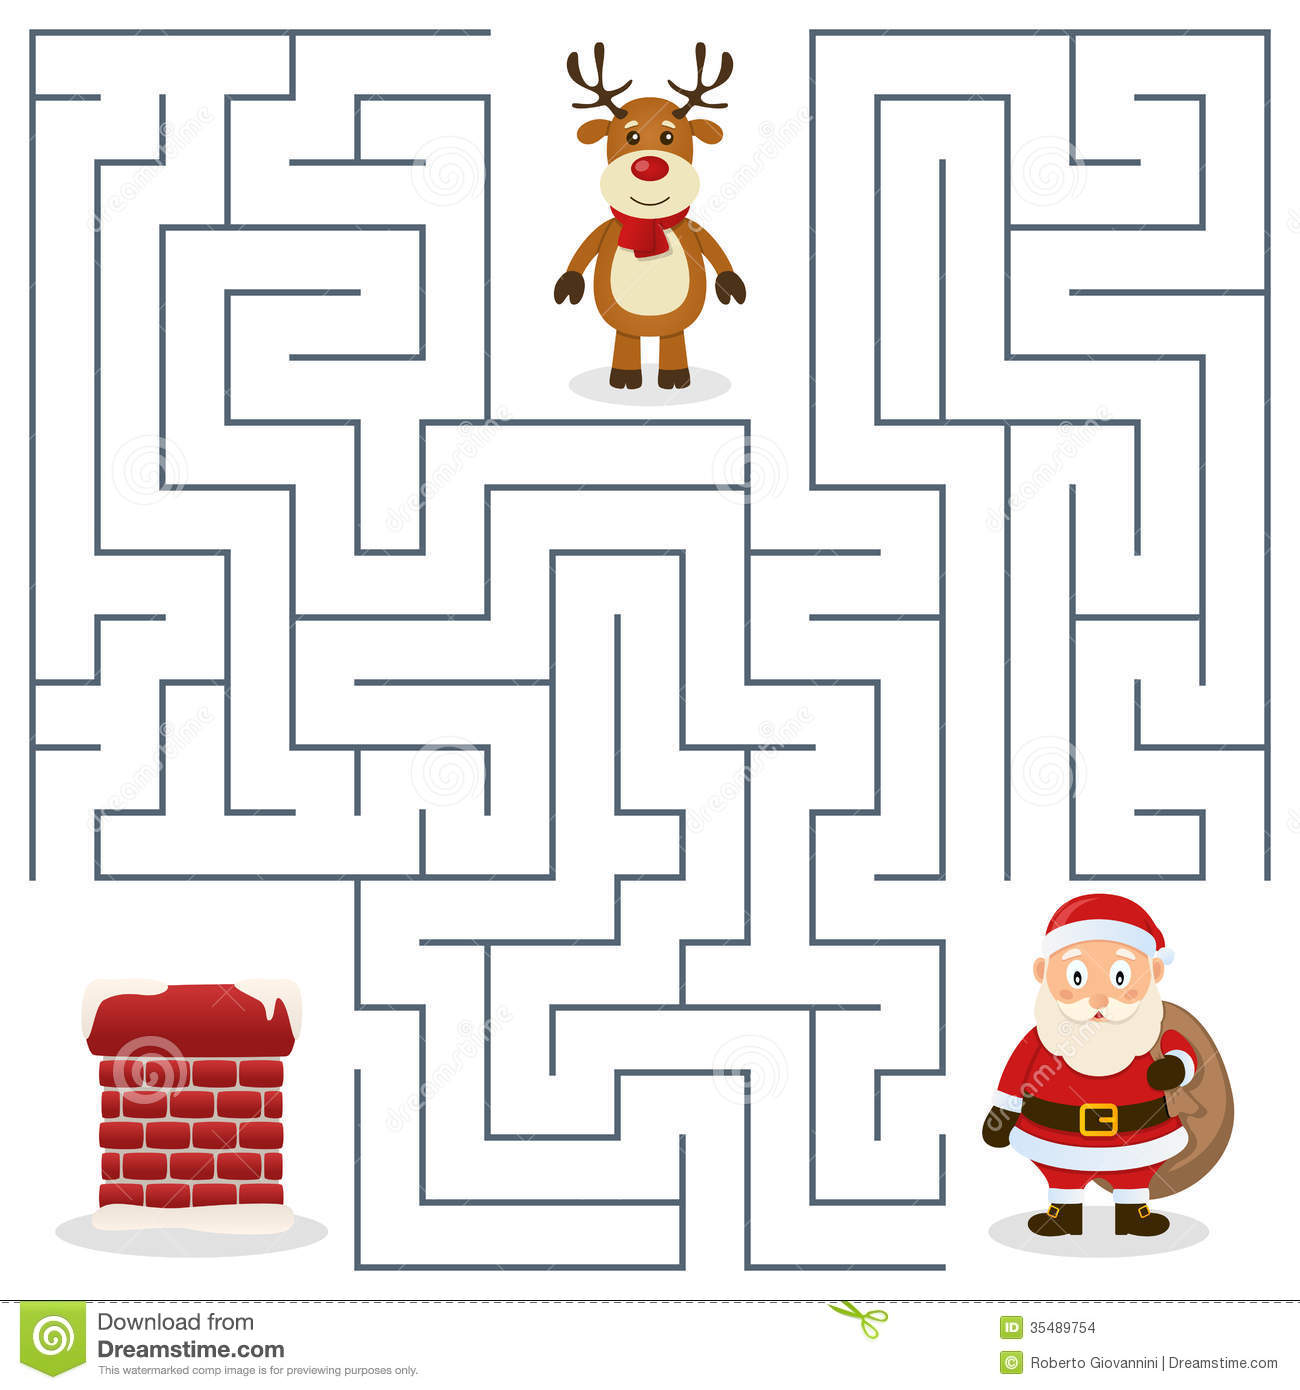 Santa Claus Amp Chimney Maze For Kids Stock Vector